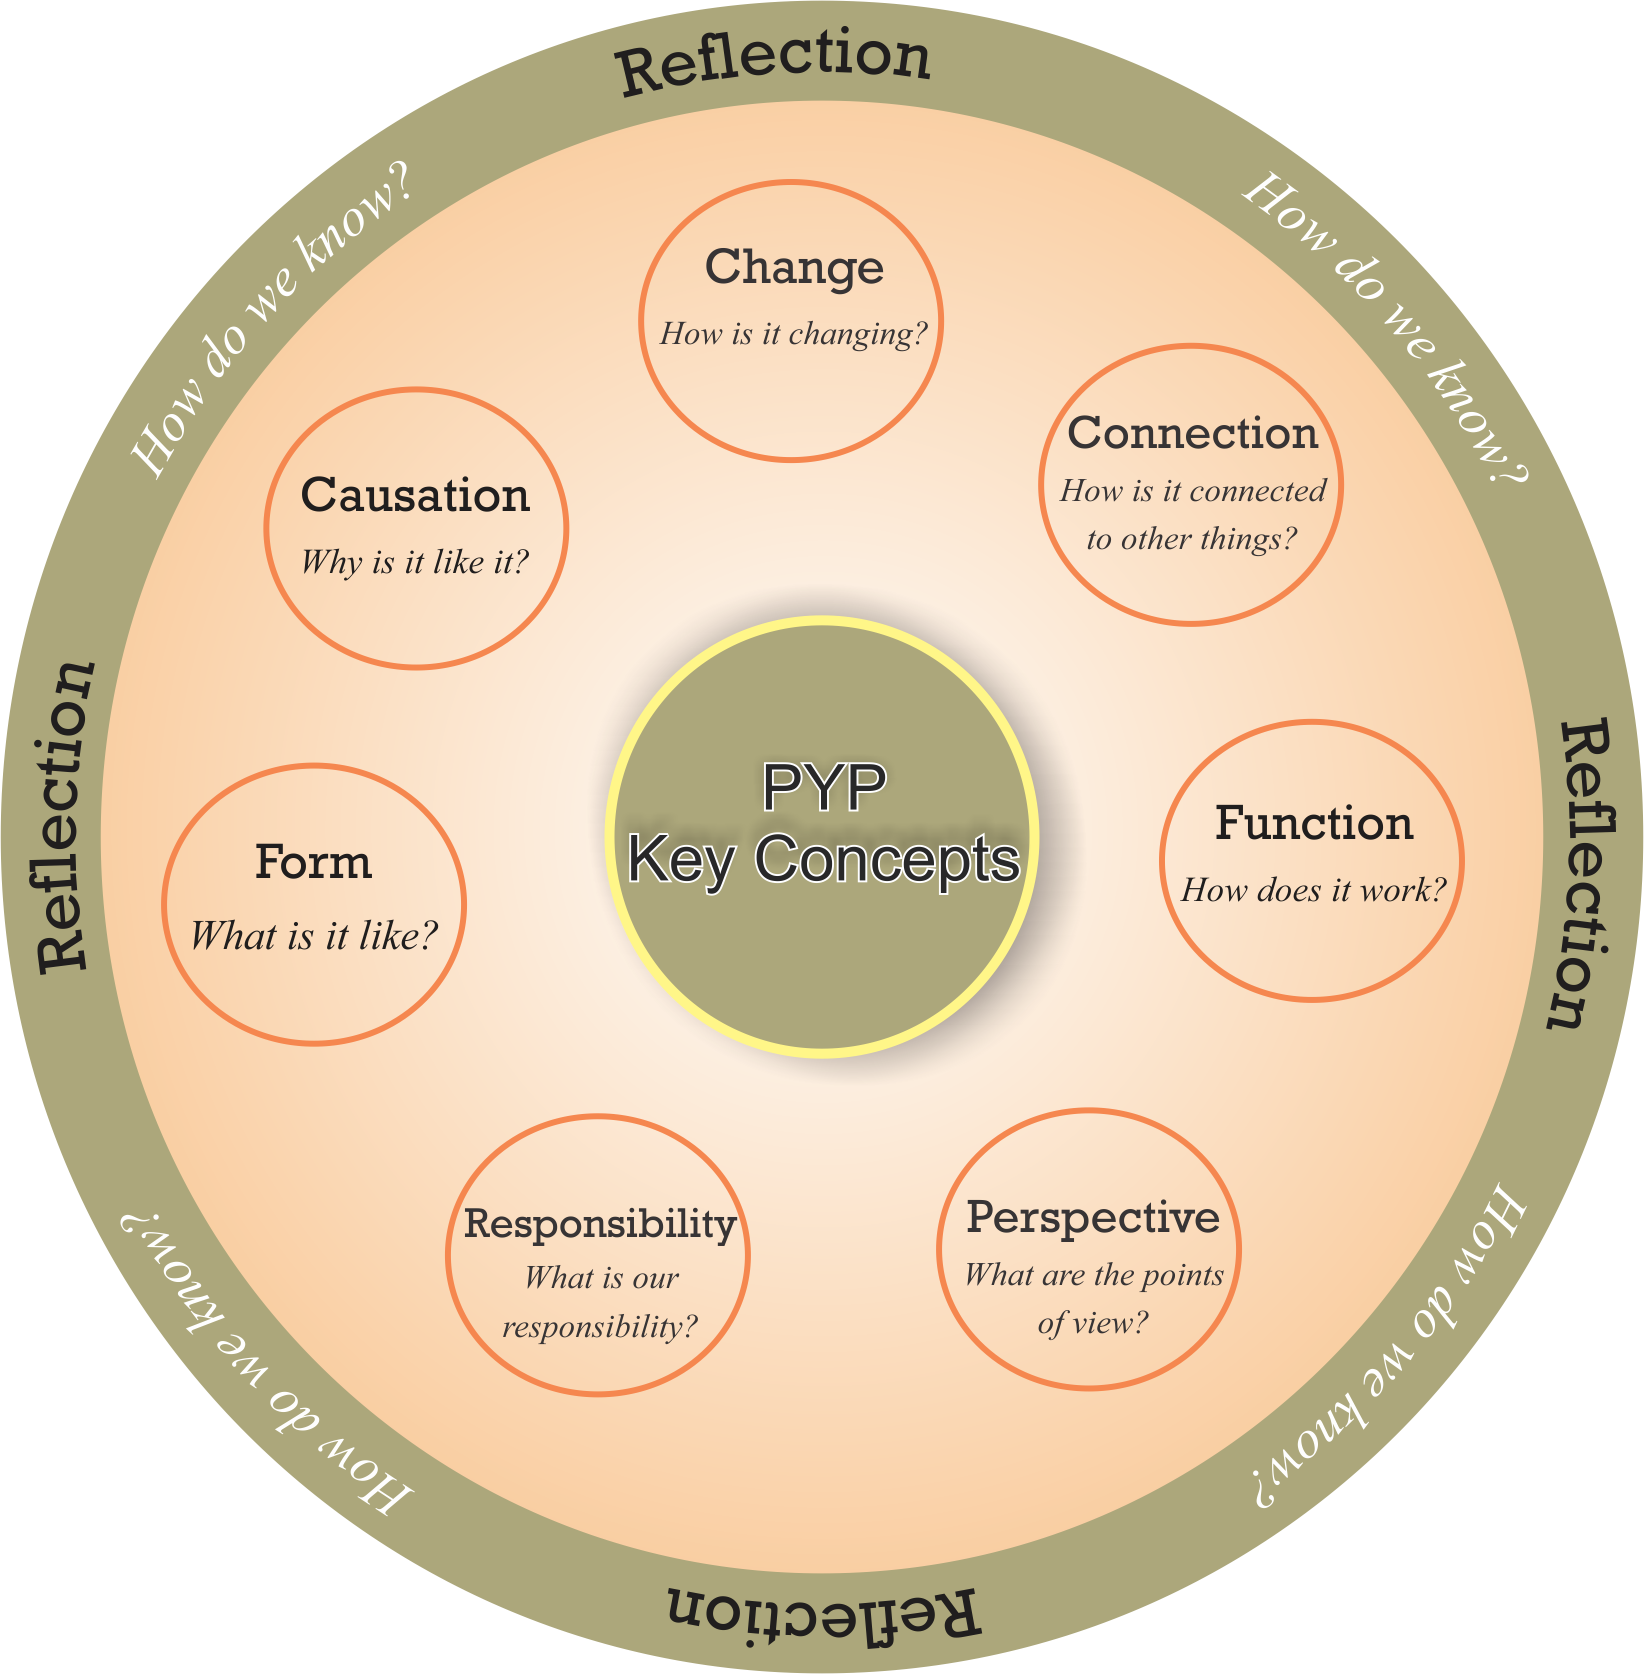 PYP key concepts